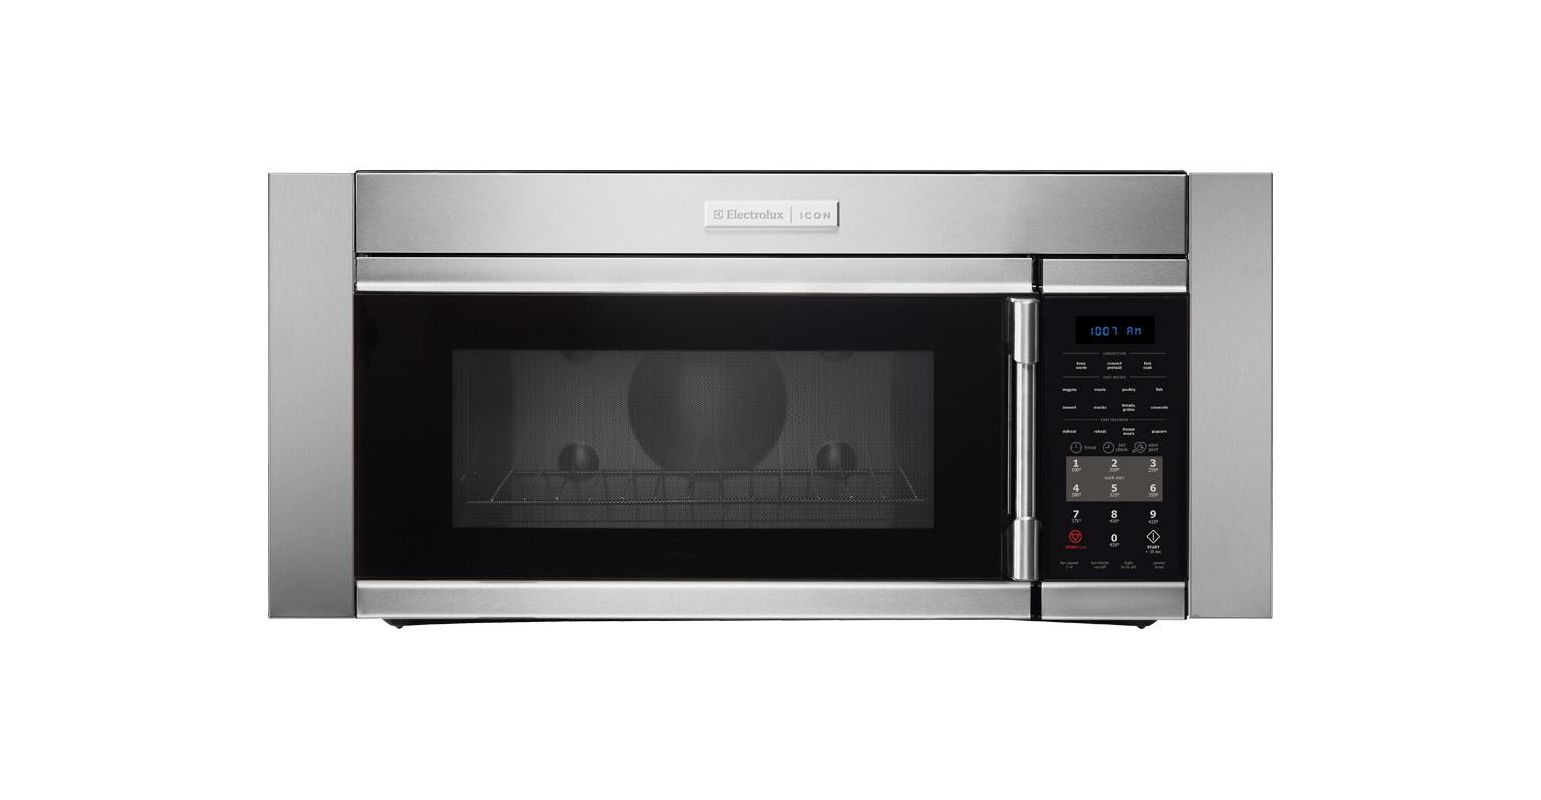 Electrolux E30MH65Q 30 Inch Wide 1.8 Cu. Ft. Over-the-Range Microwave with Autom photo